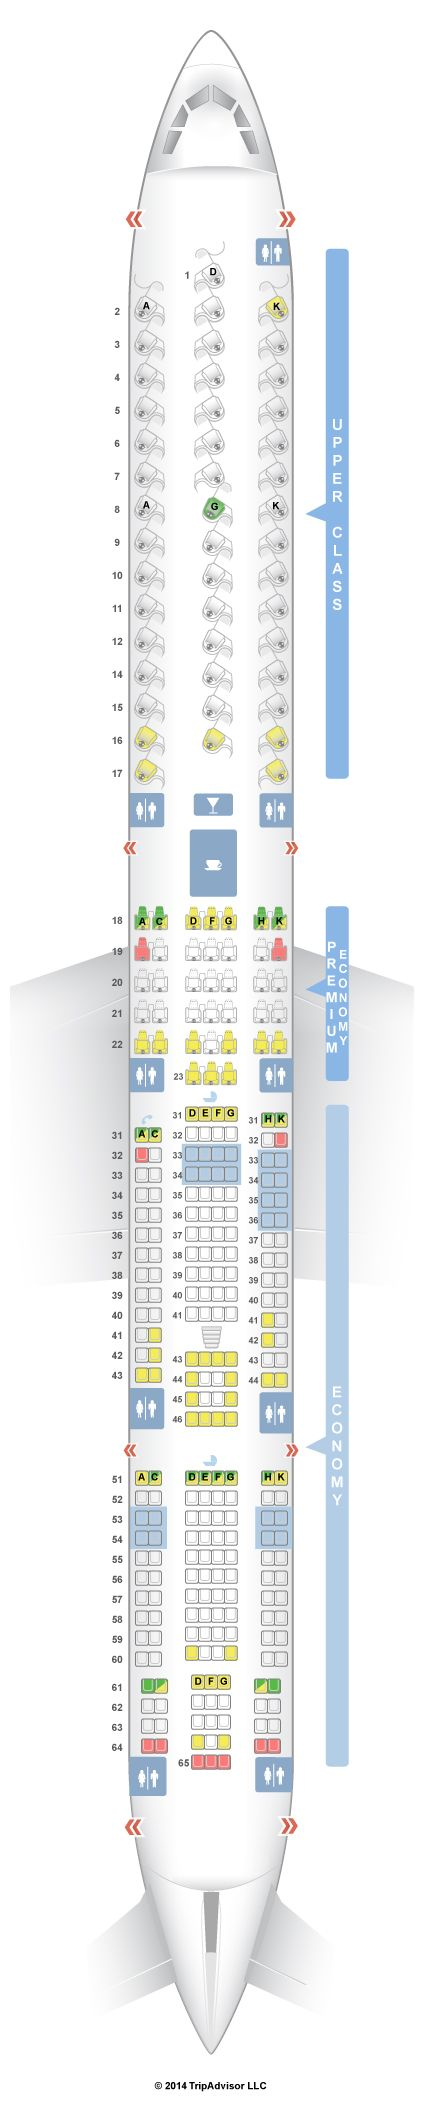 SeatGuru Seat Map Virgin Atlantic Airbus A340-600 (346)